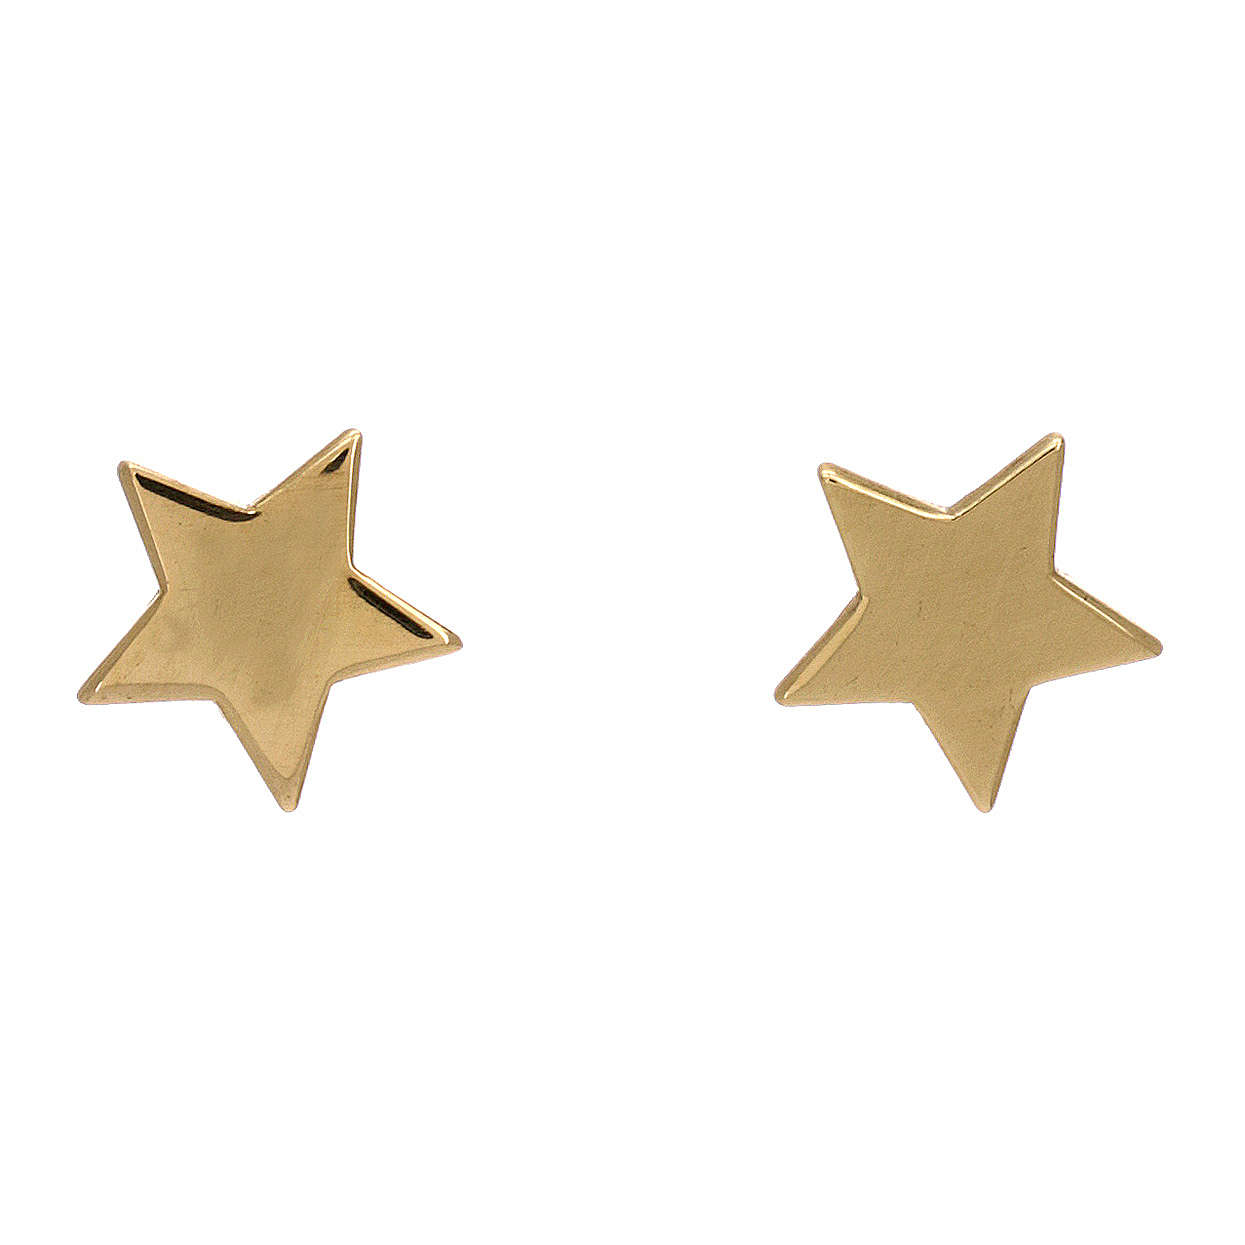 Gold star stud earrings, AMEN in 925 silver 4